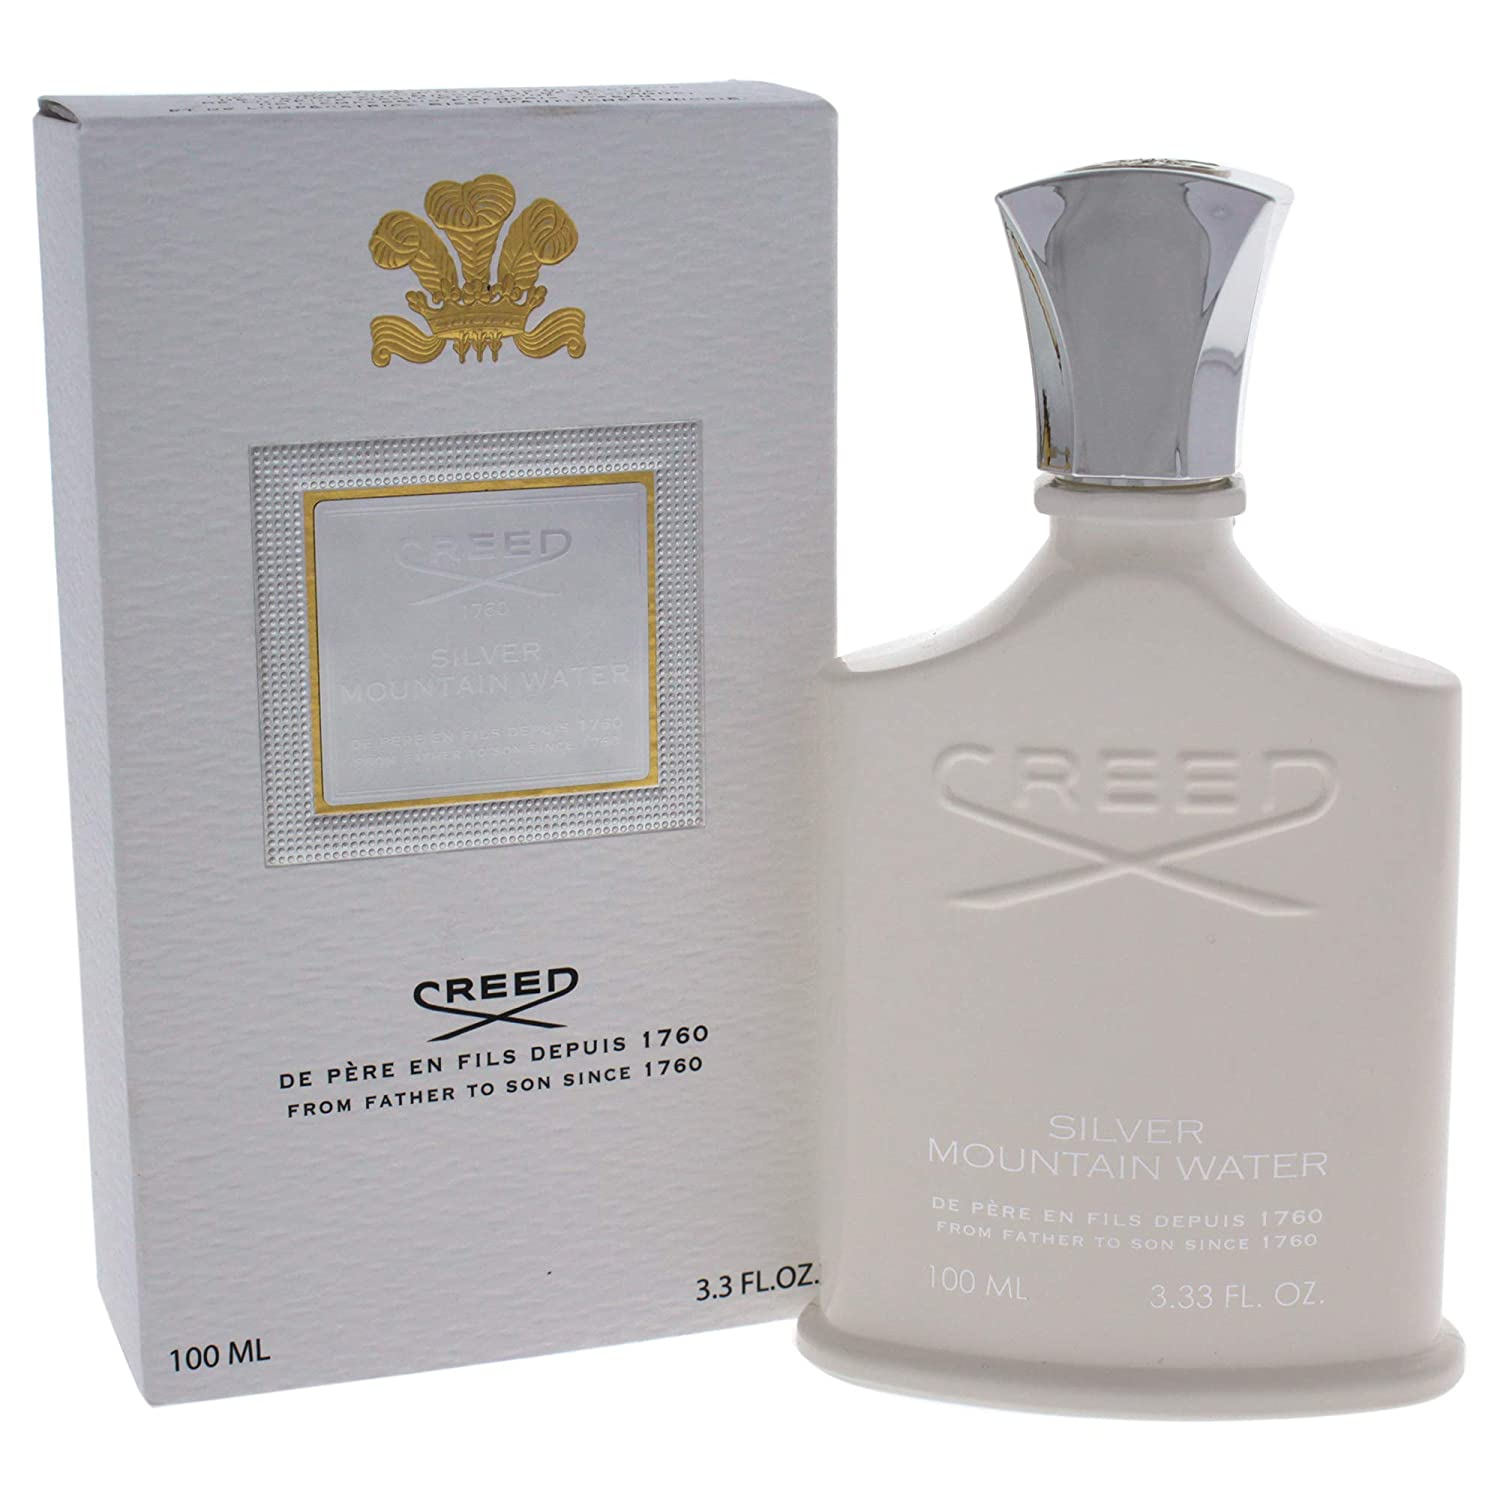 Creed Silver Mountain Water Eau De Parfum Spray, 3.3 Ounce Nandansons (DROPSHIP) 3508441001053